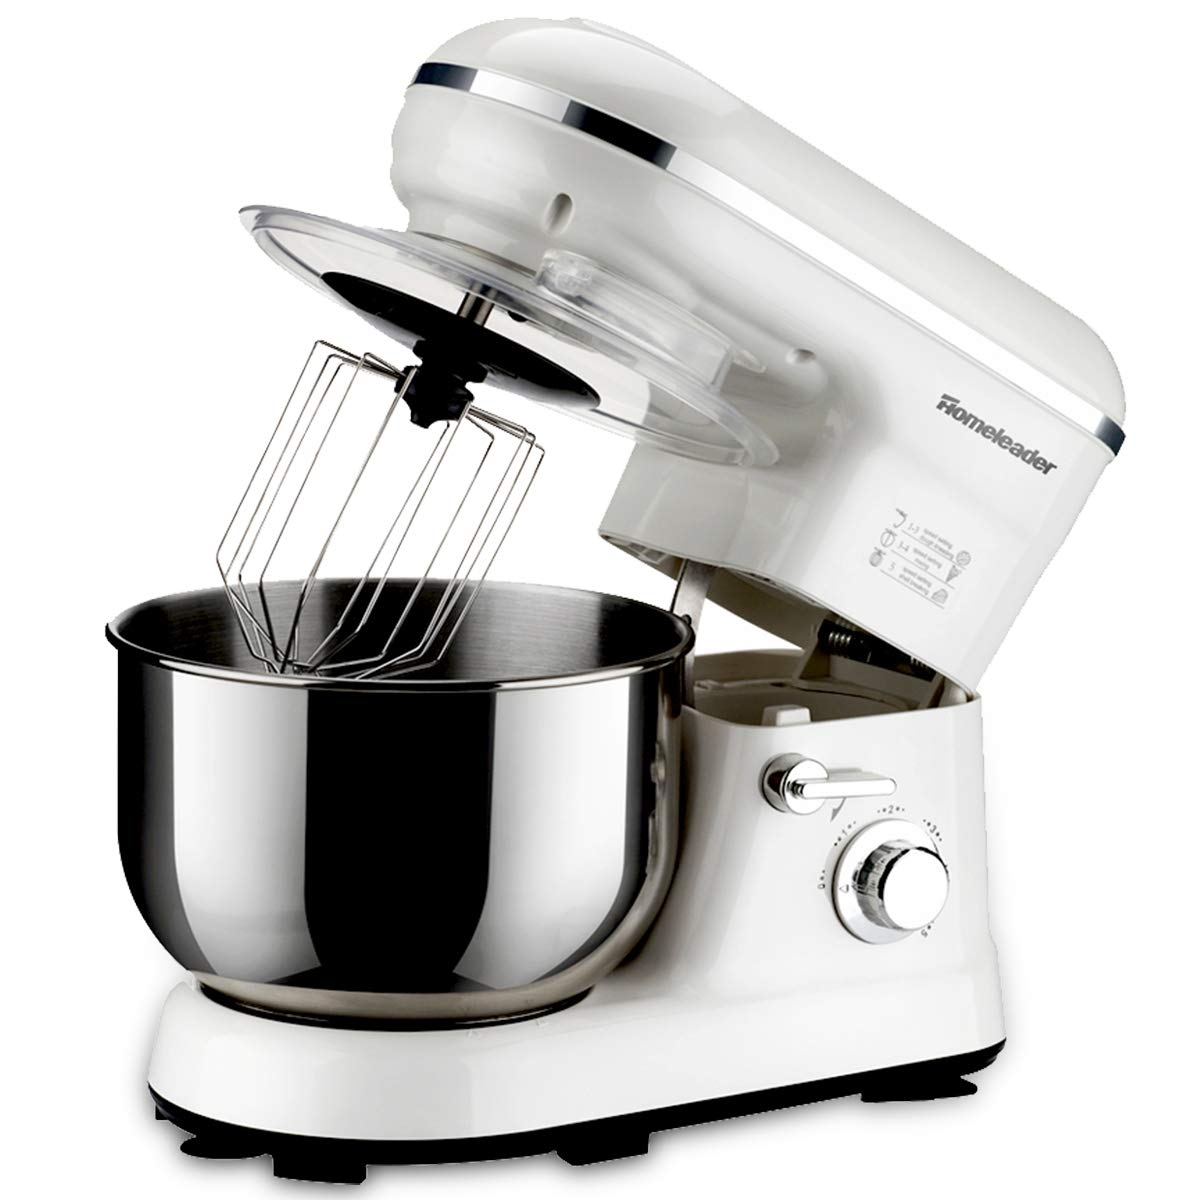 Homeleader Power Tilt-Head Stand Mixer, Food Mixer, Kitchen Electric Mixer with Double Dough Hook, Whisk, Beater, Splash Guard, Multiple speeds, 5 Quart Stainless Steel Bowl, White, 800W